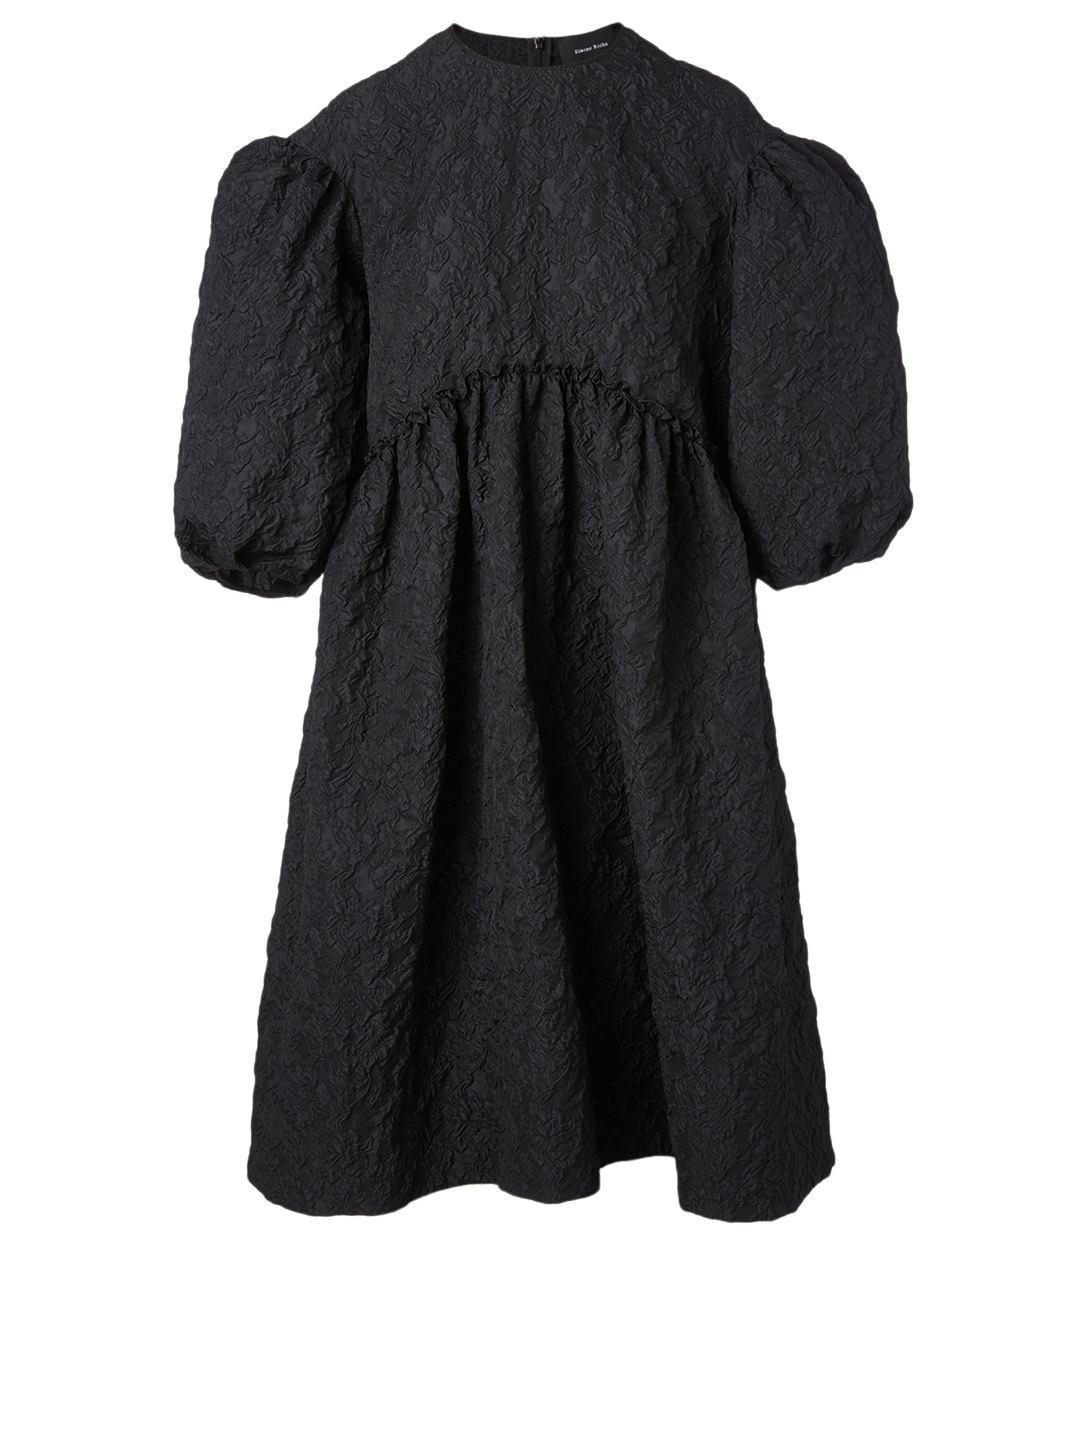 SIMONE ROCHA Short-Sleeve Smock Dress Women's Black